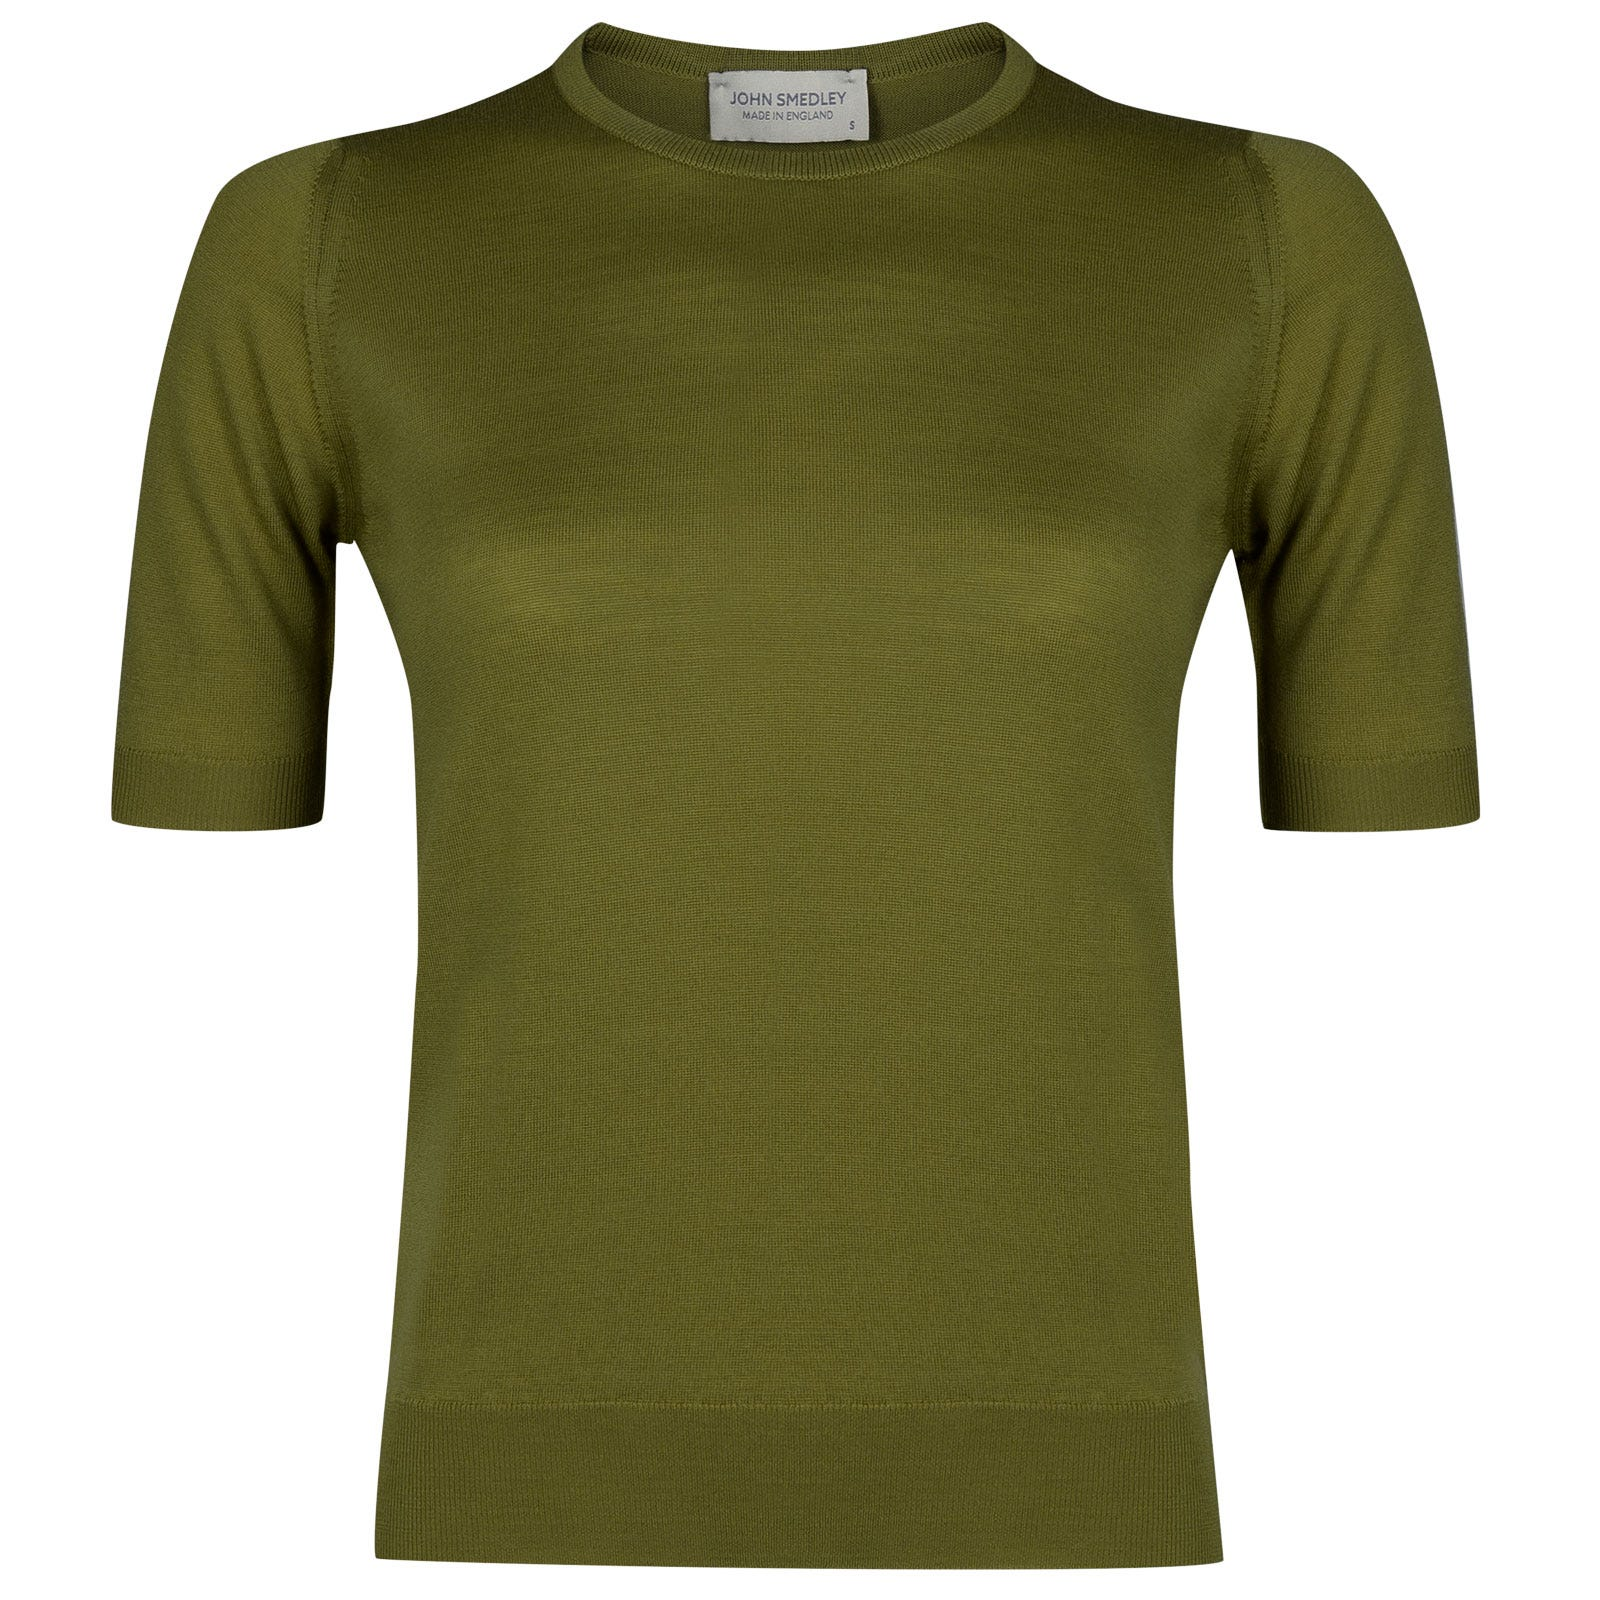 John Smedley trieste Merino Wool Sweater in Lumsdale Green-S